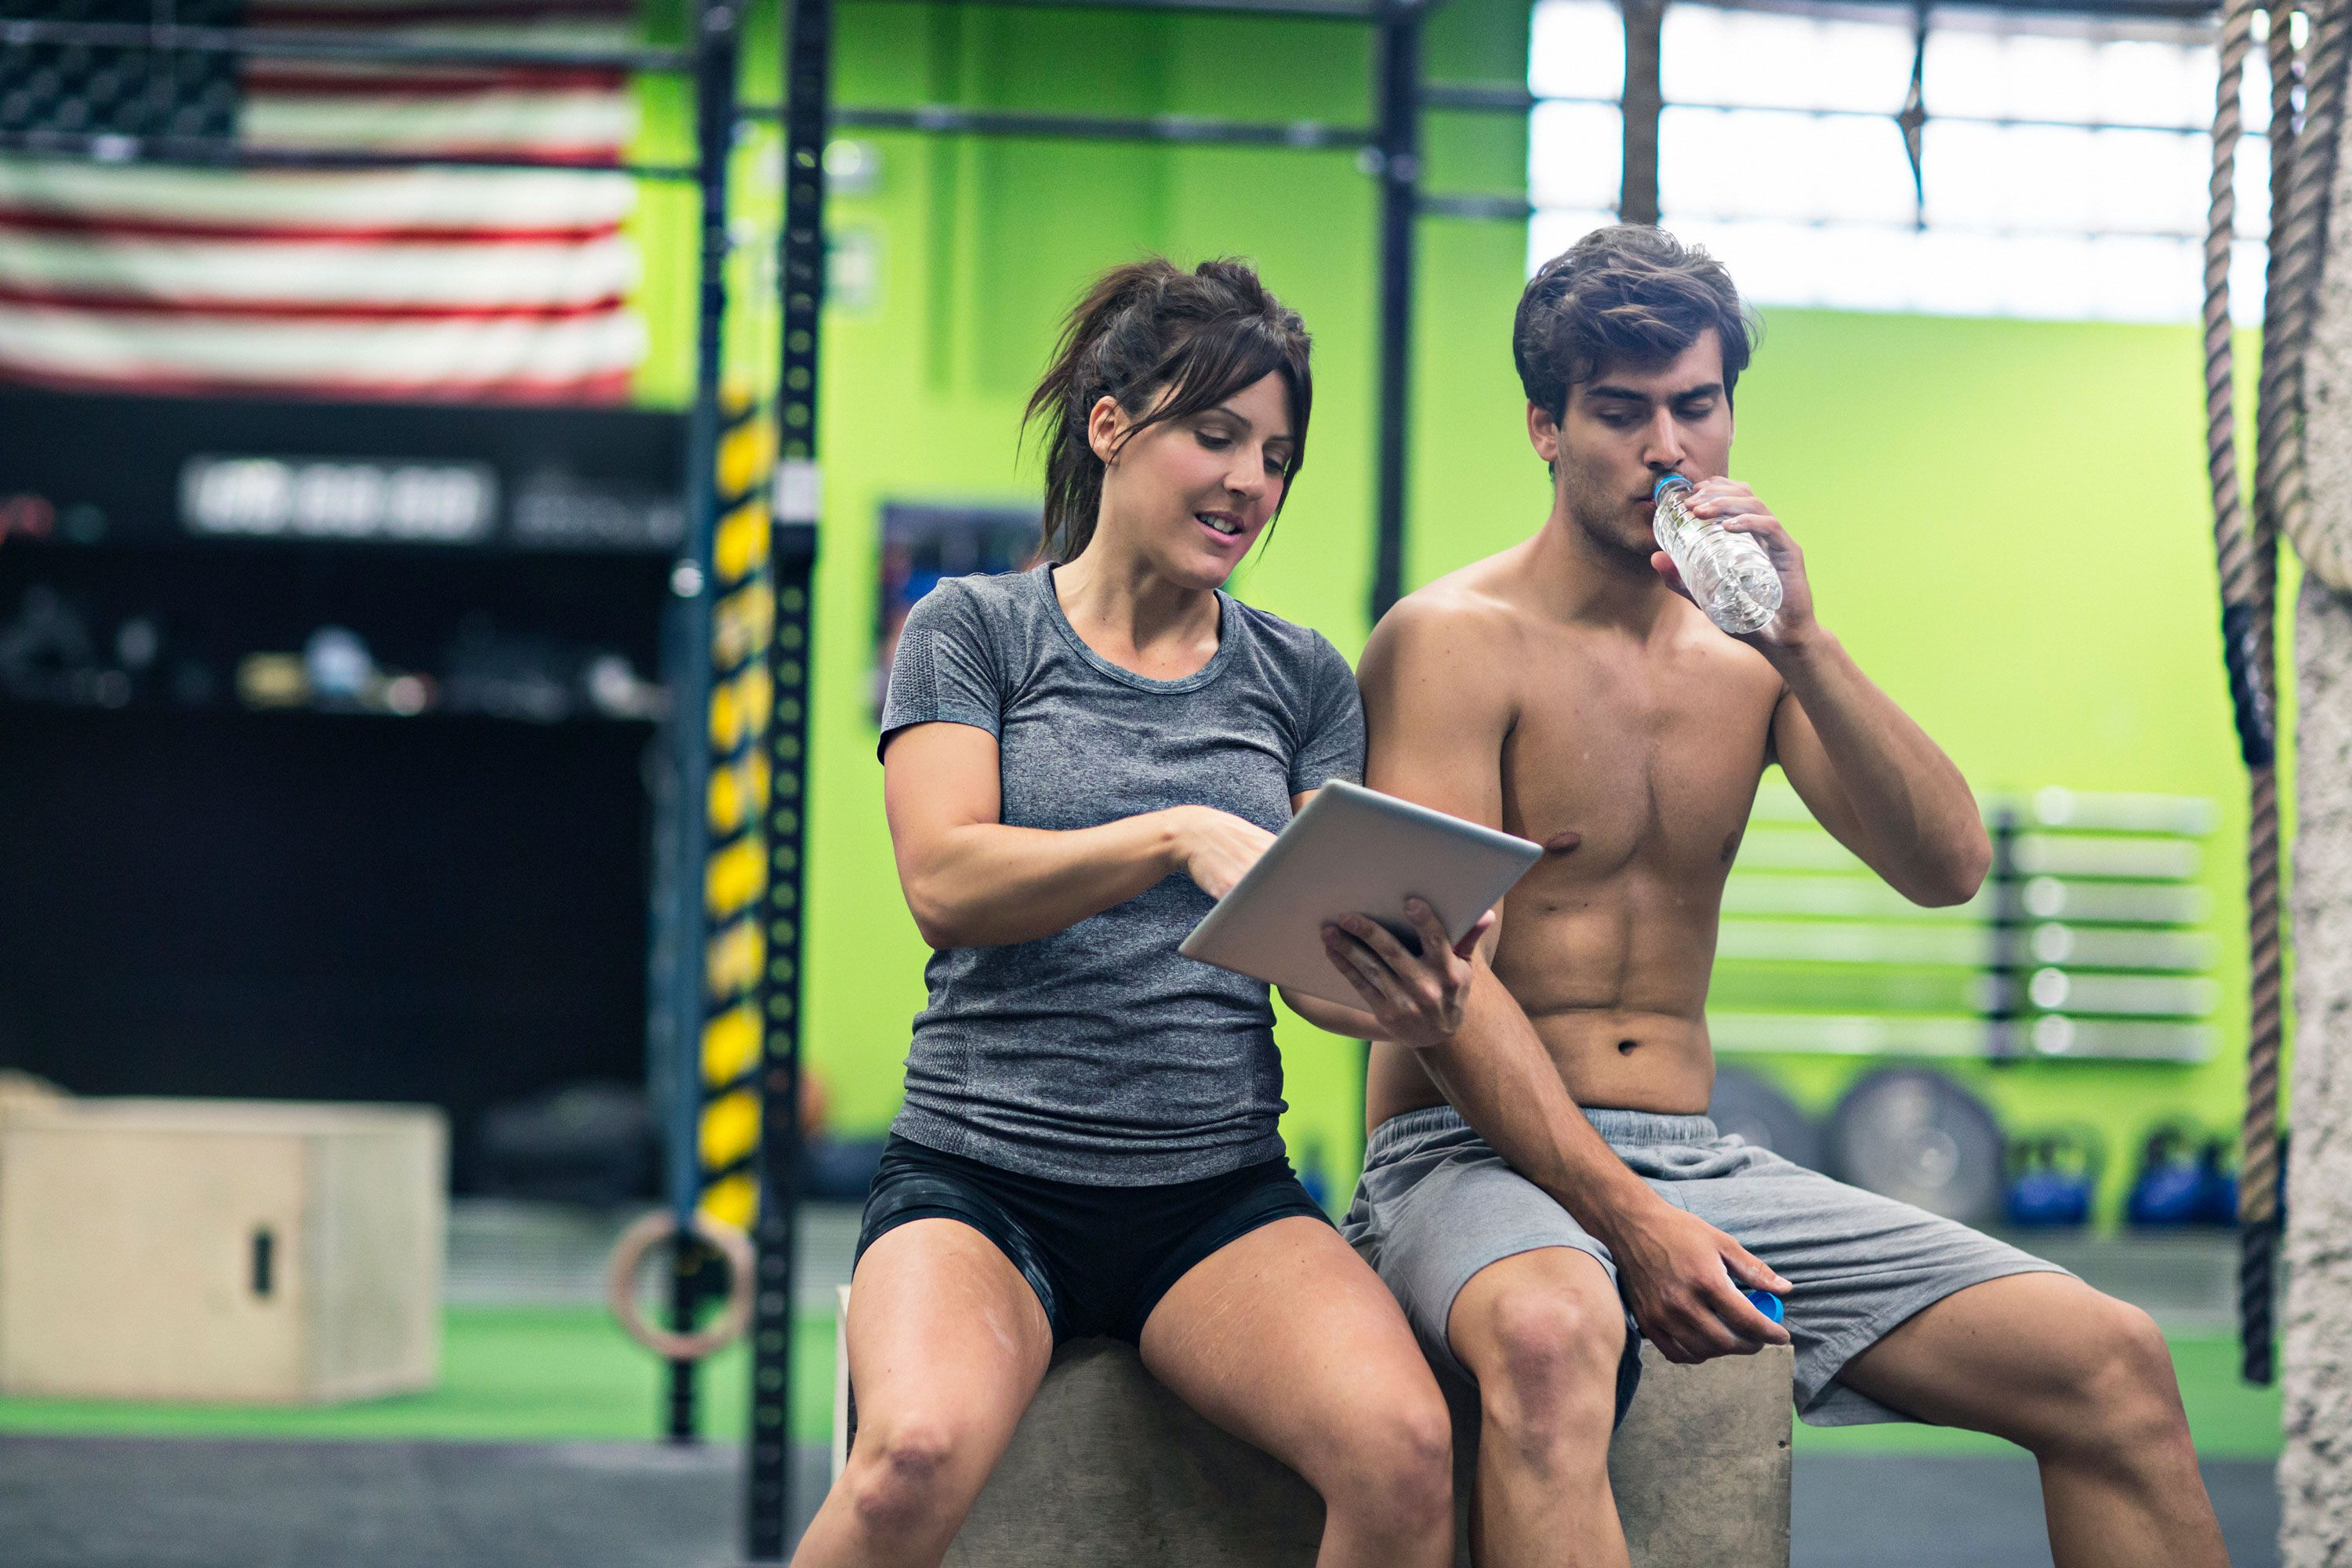 The Best CrossFit Apps Every Serious Athlete Should Download